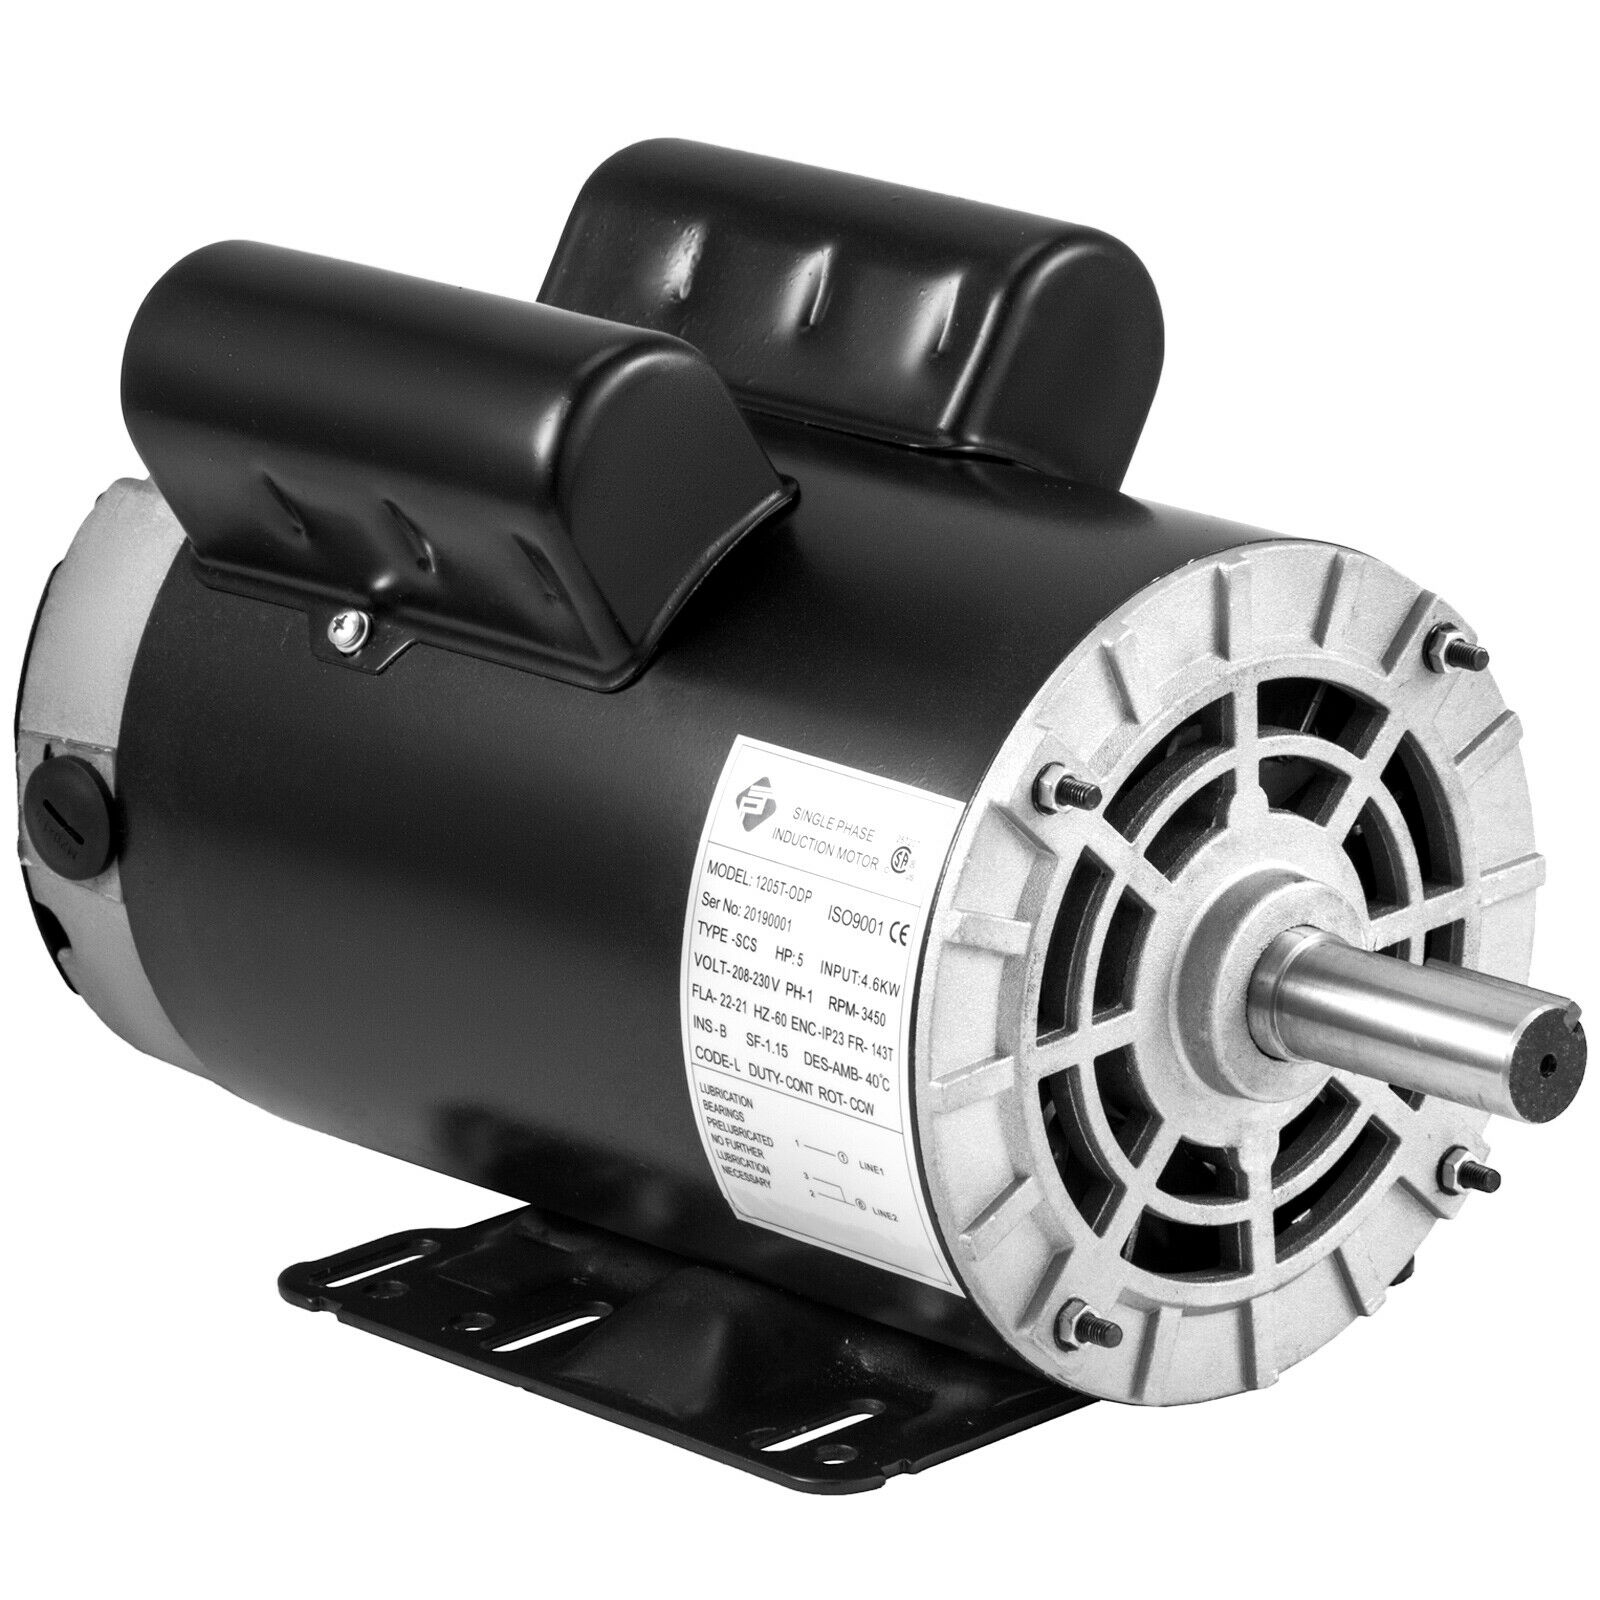 VEVOR 1.5 Hp Electric Motor with Flange Rated Speed 3450 RPM Single Phase Motor AC 115-230V Air Compressor Motor Suit for Agricultural Machinery and General Equipment